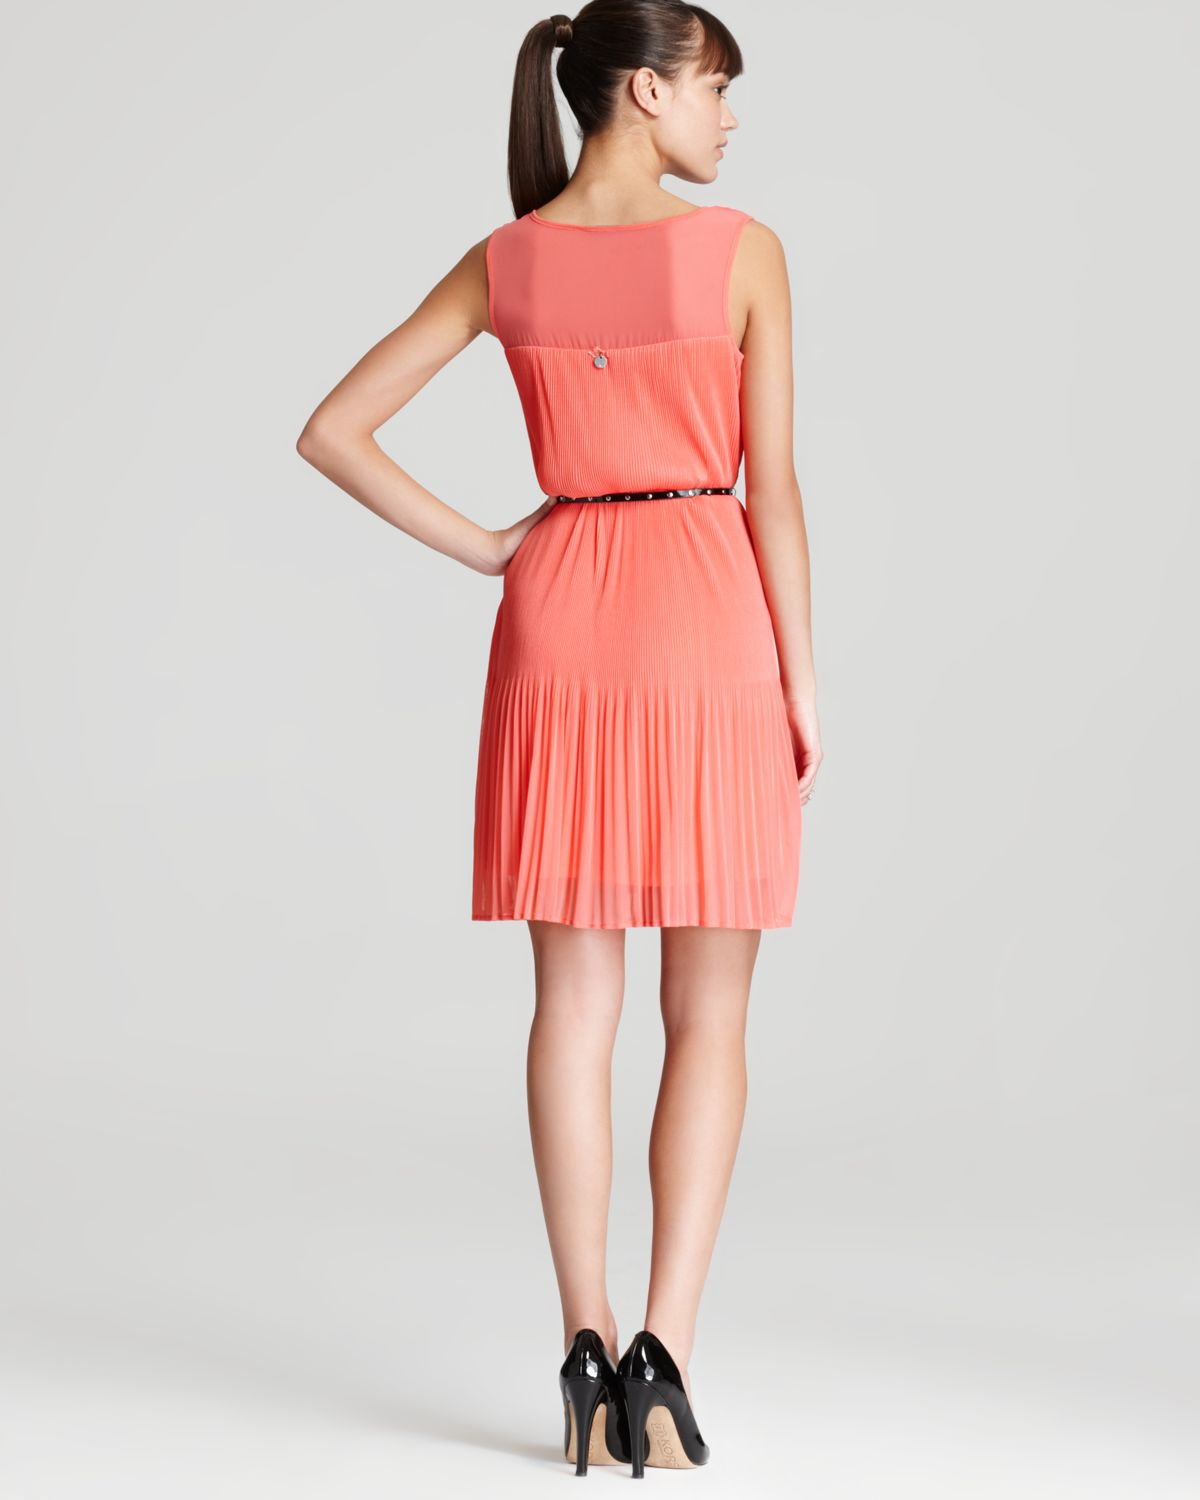 Guess Dress Caroline Belted In Coral (Pink)